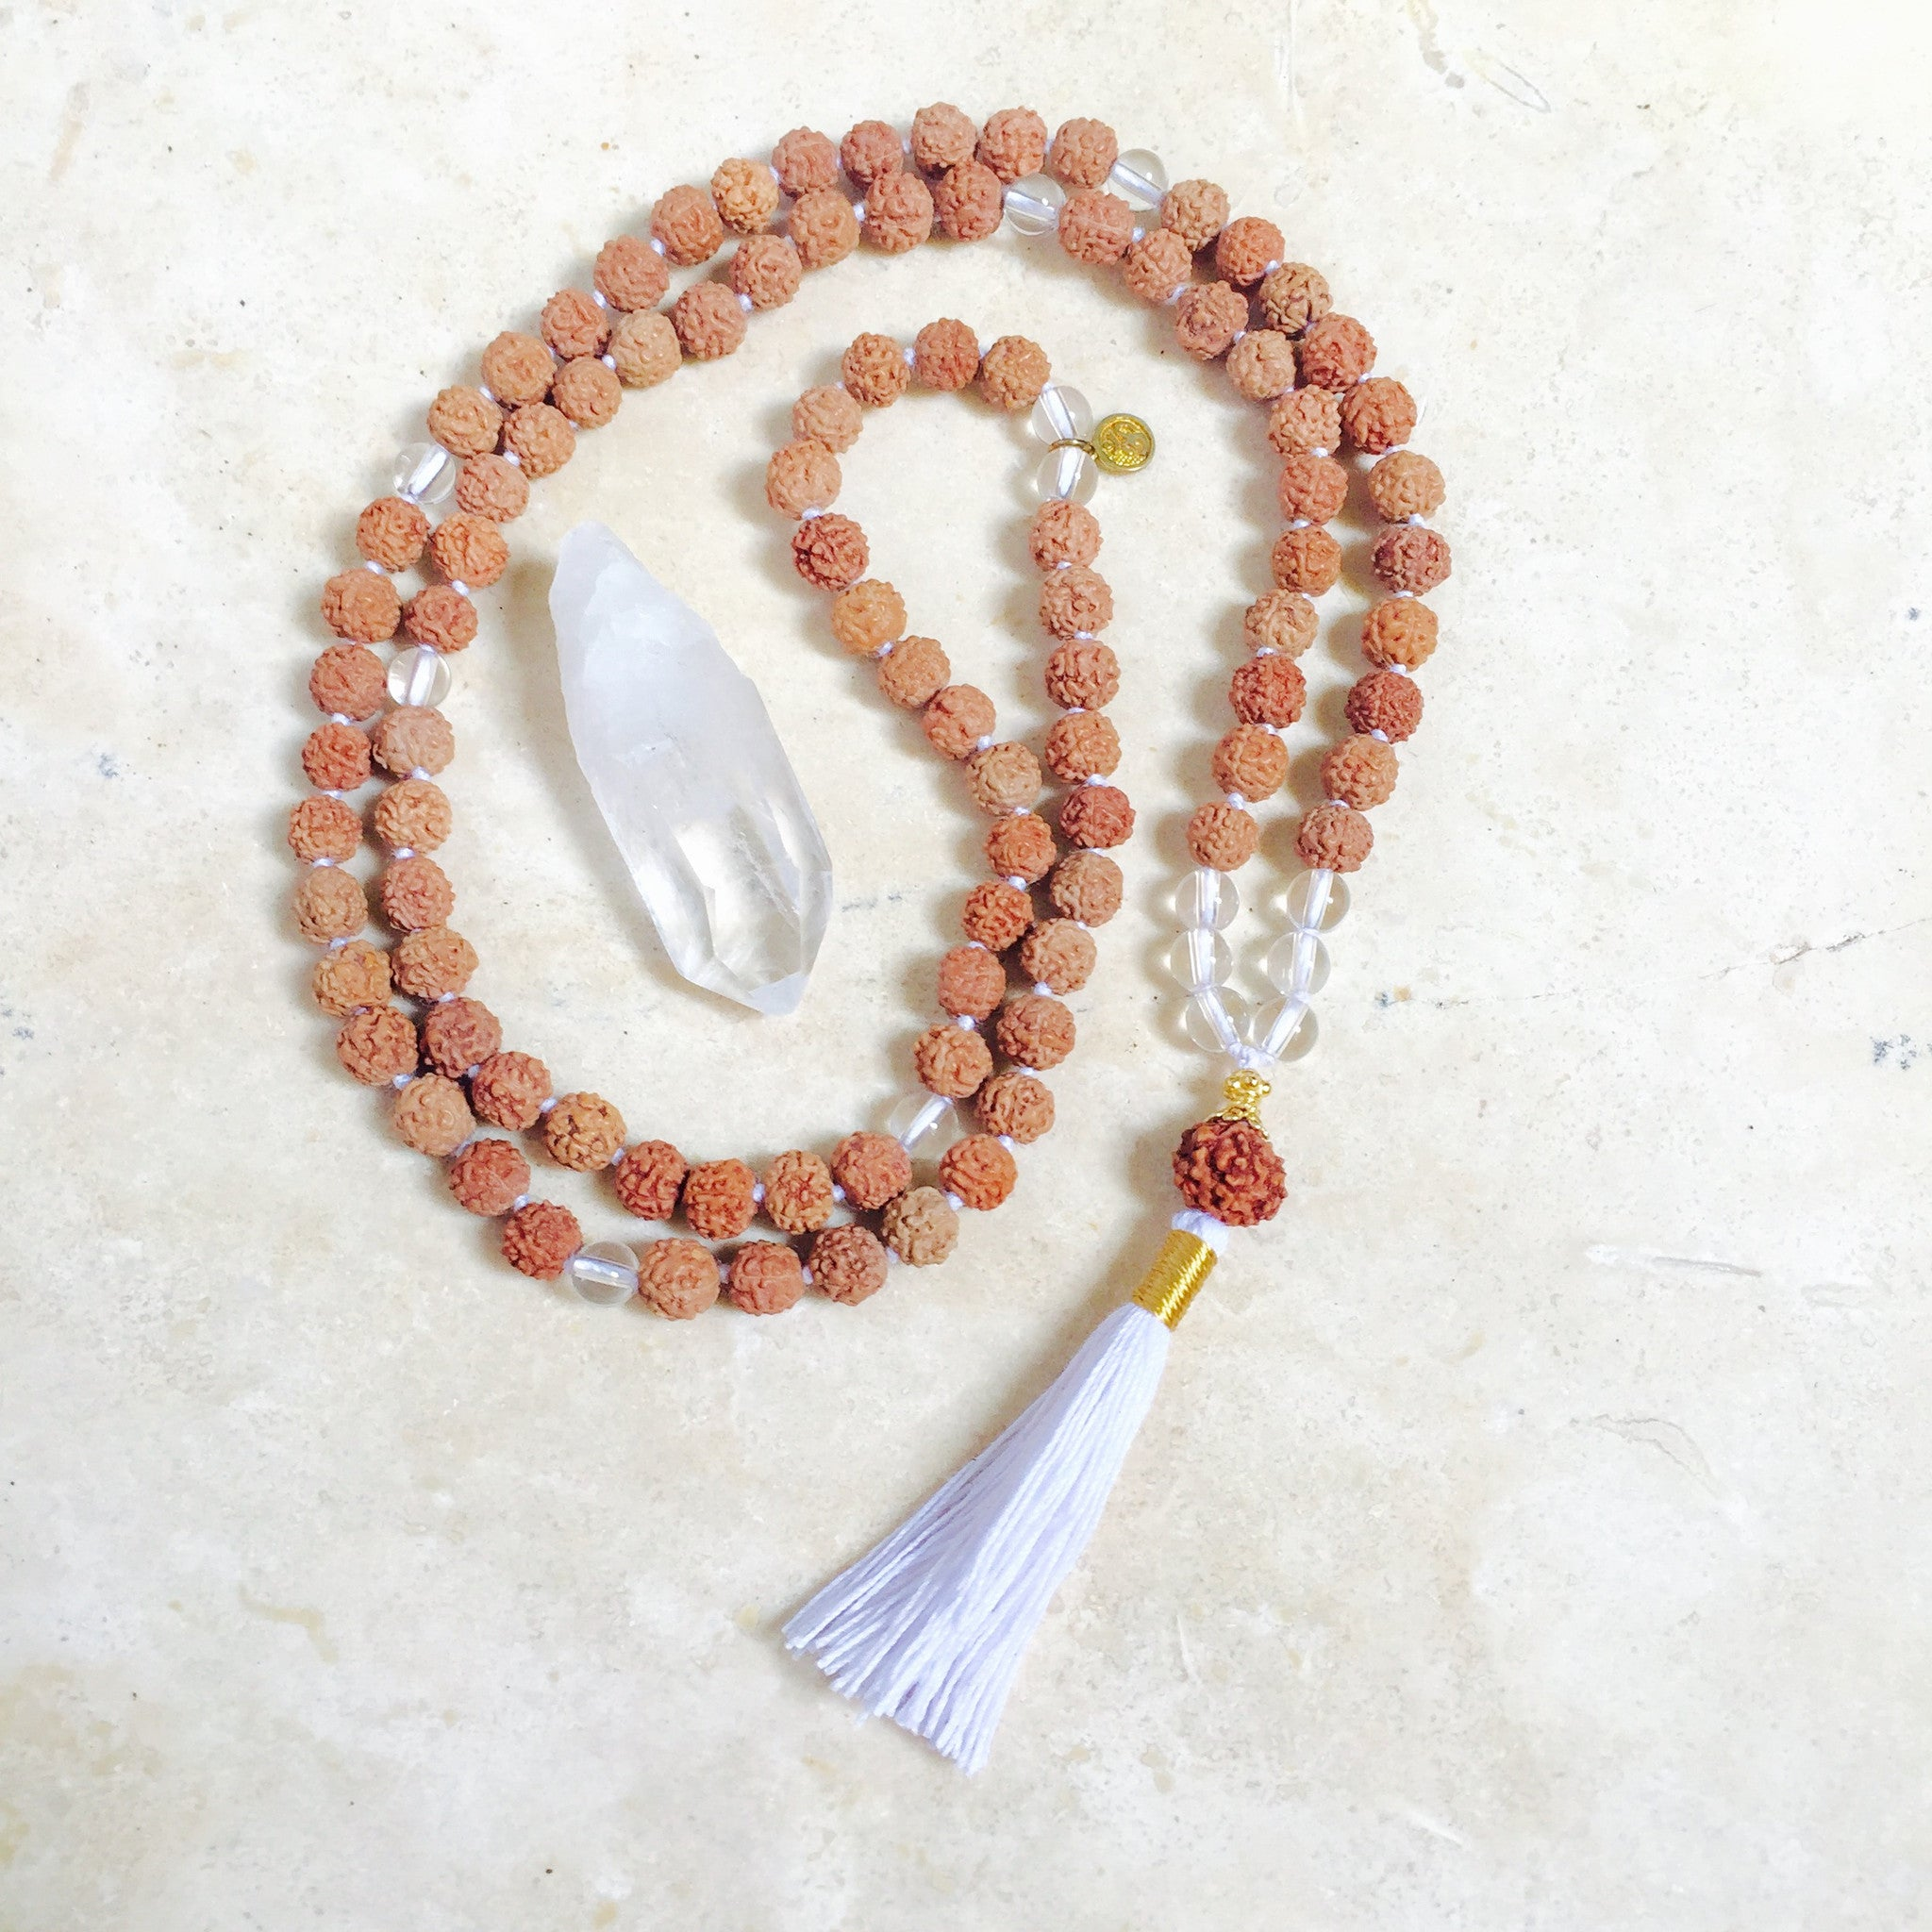 necklace prayer bead mala item store